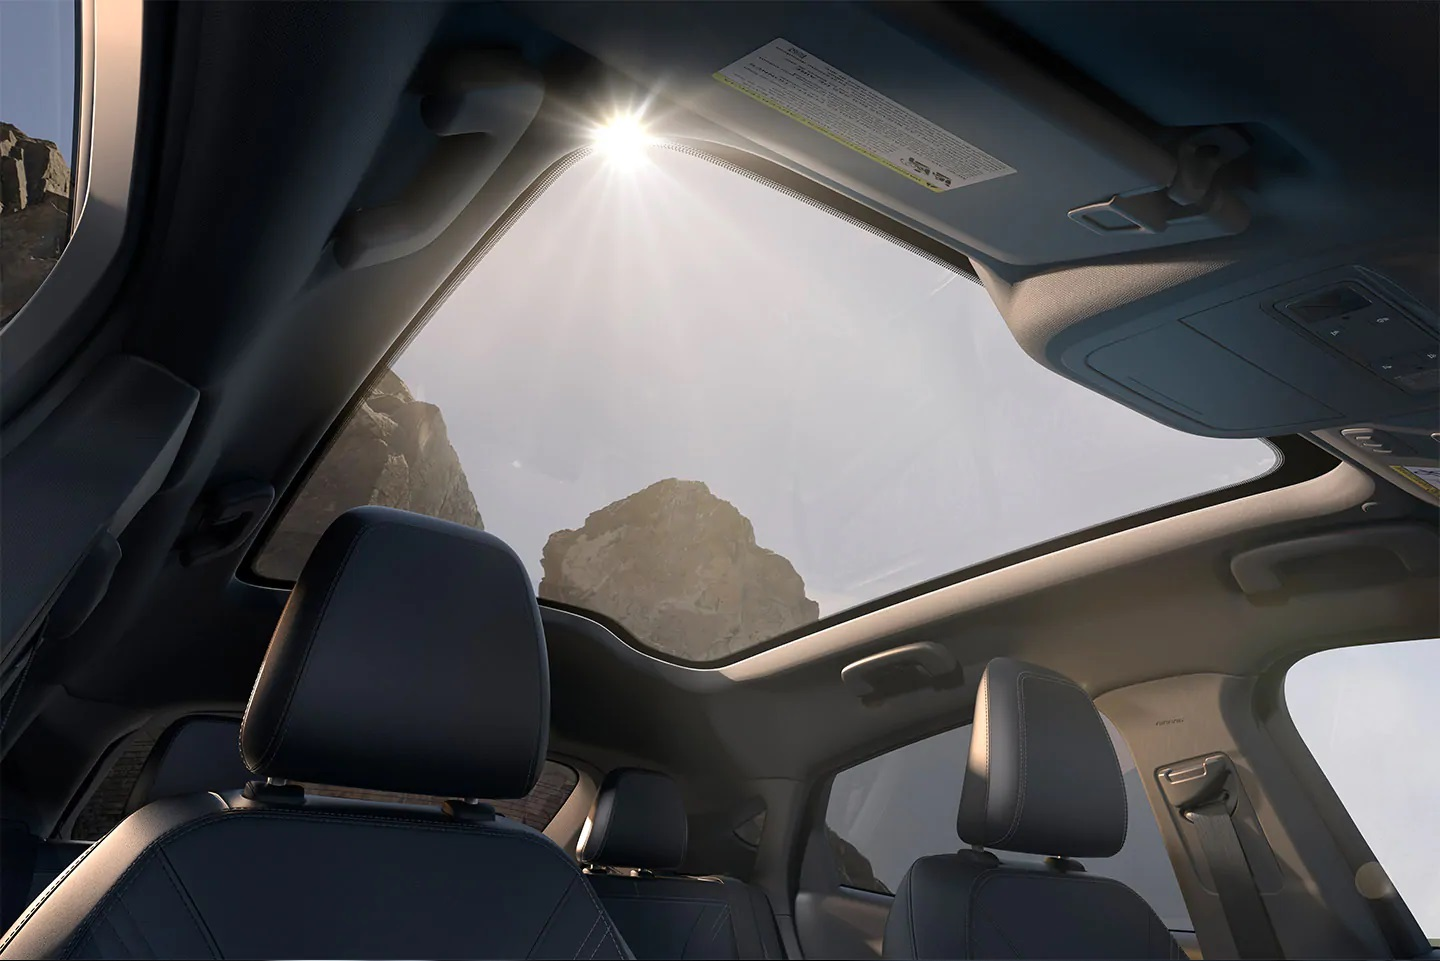 2021 Ford Mustang Mach-E Panoramic Roof